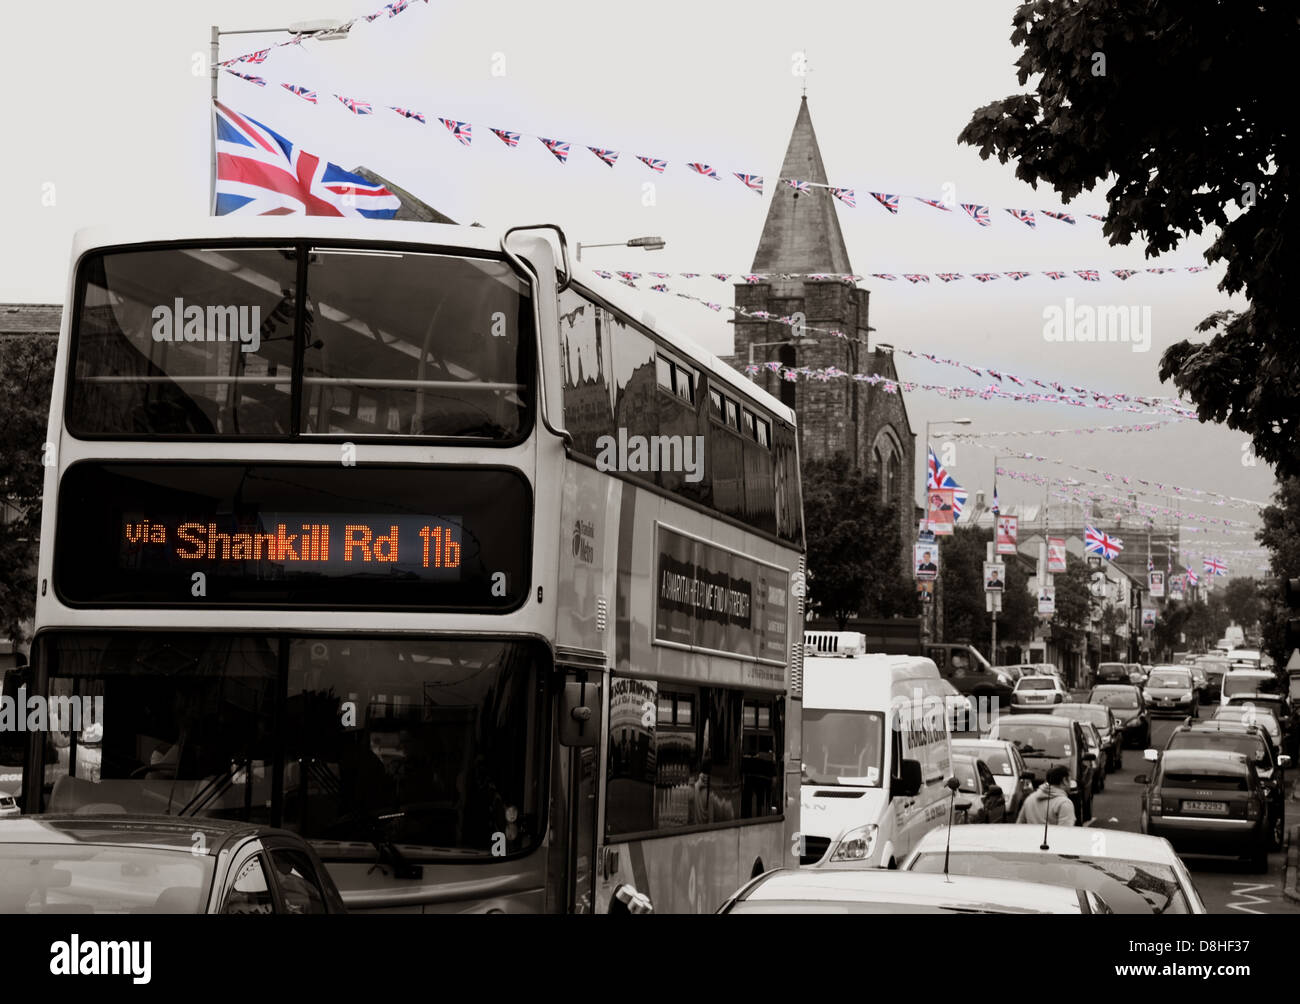 Ulsterbus,city,of,Belfast,sepia,flags,GB,british,union,jack,jacks,unionist,Britain,red,white,blue,DUP,Ulster,unionist,party,orange,man,orangeman,marching,day,July,orangemen,lodge,tradition,traditionalists,service,tour,road,traffic,congestion,cars,automobiles,automobile,history,historic,Ireland,rd,gotonysmith,fear,home,rule,homerule,nationalist,real,the,11b,via,gotonysmith,Buy Pictures of,Buy Images Of